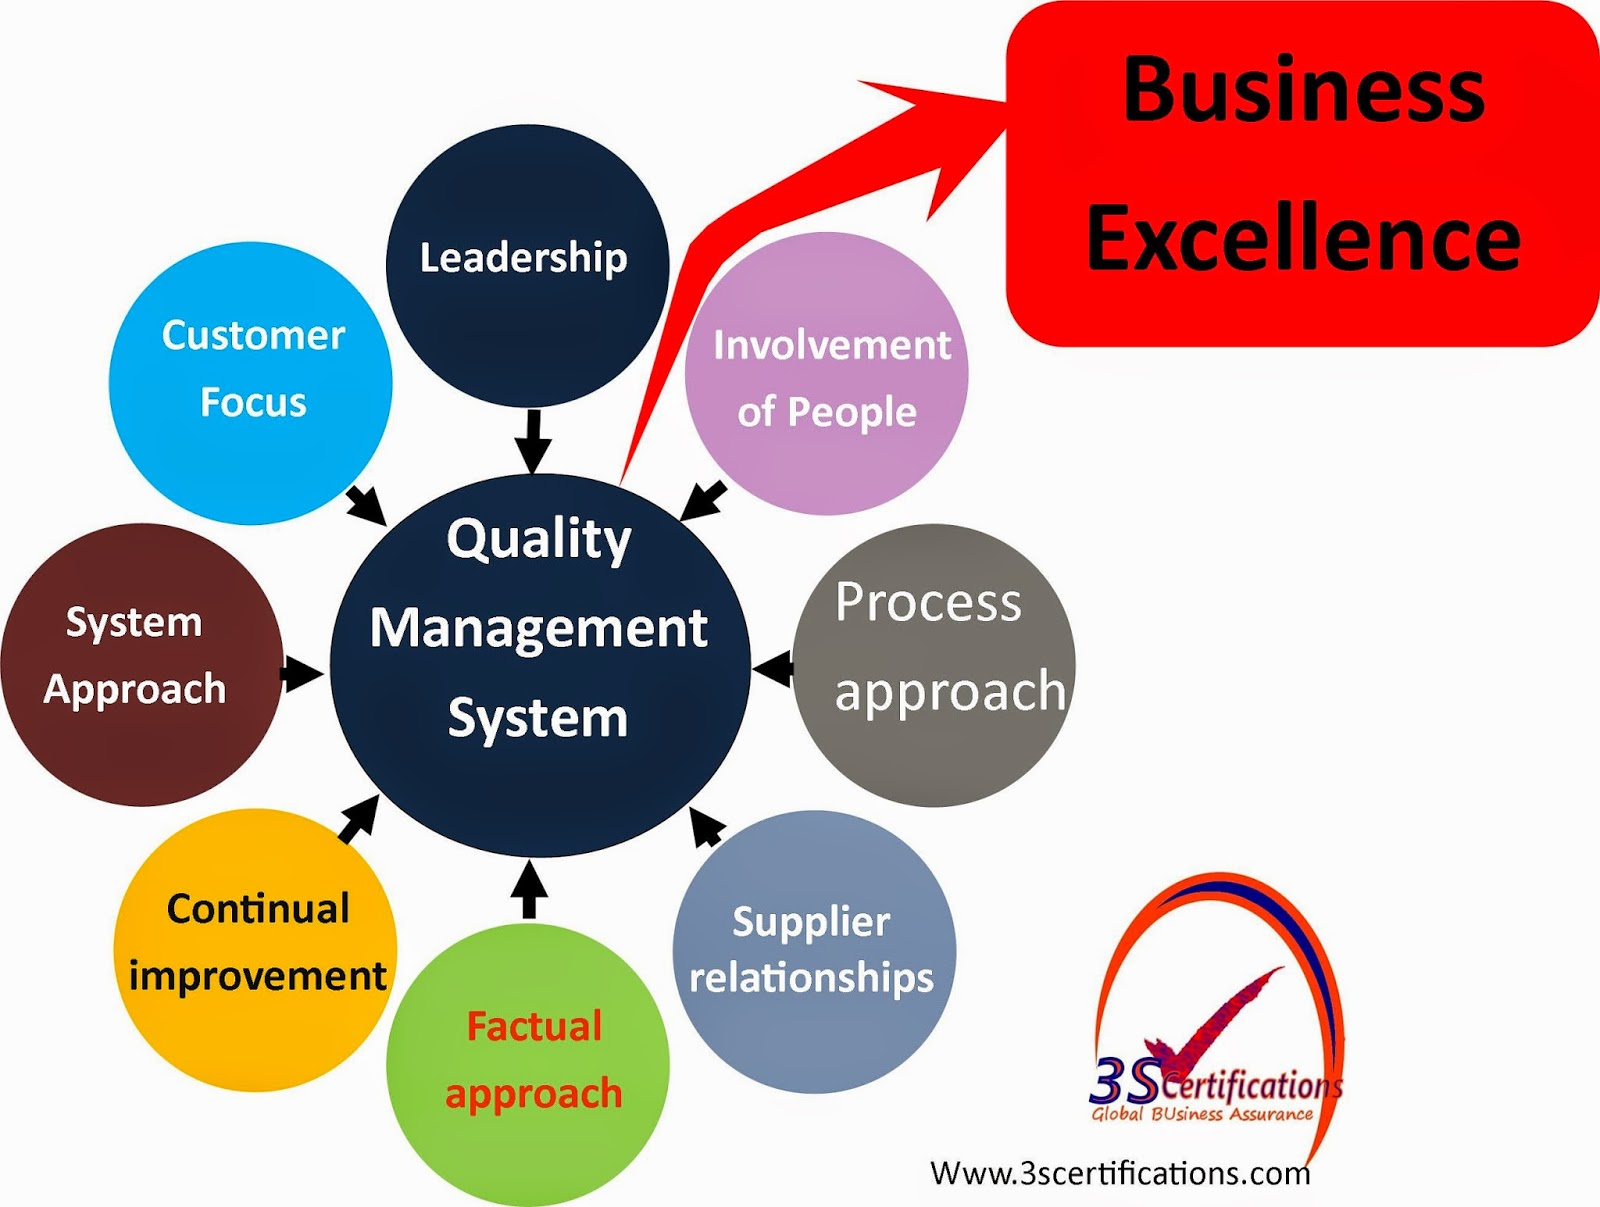 quality in business excellence Apply to 3364 business excellence jobs in delhi ncr on naukricom, india's no1 job portal explore business excellence job openings in delhi ncr now.